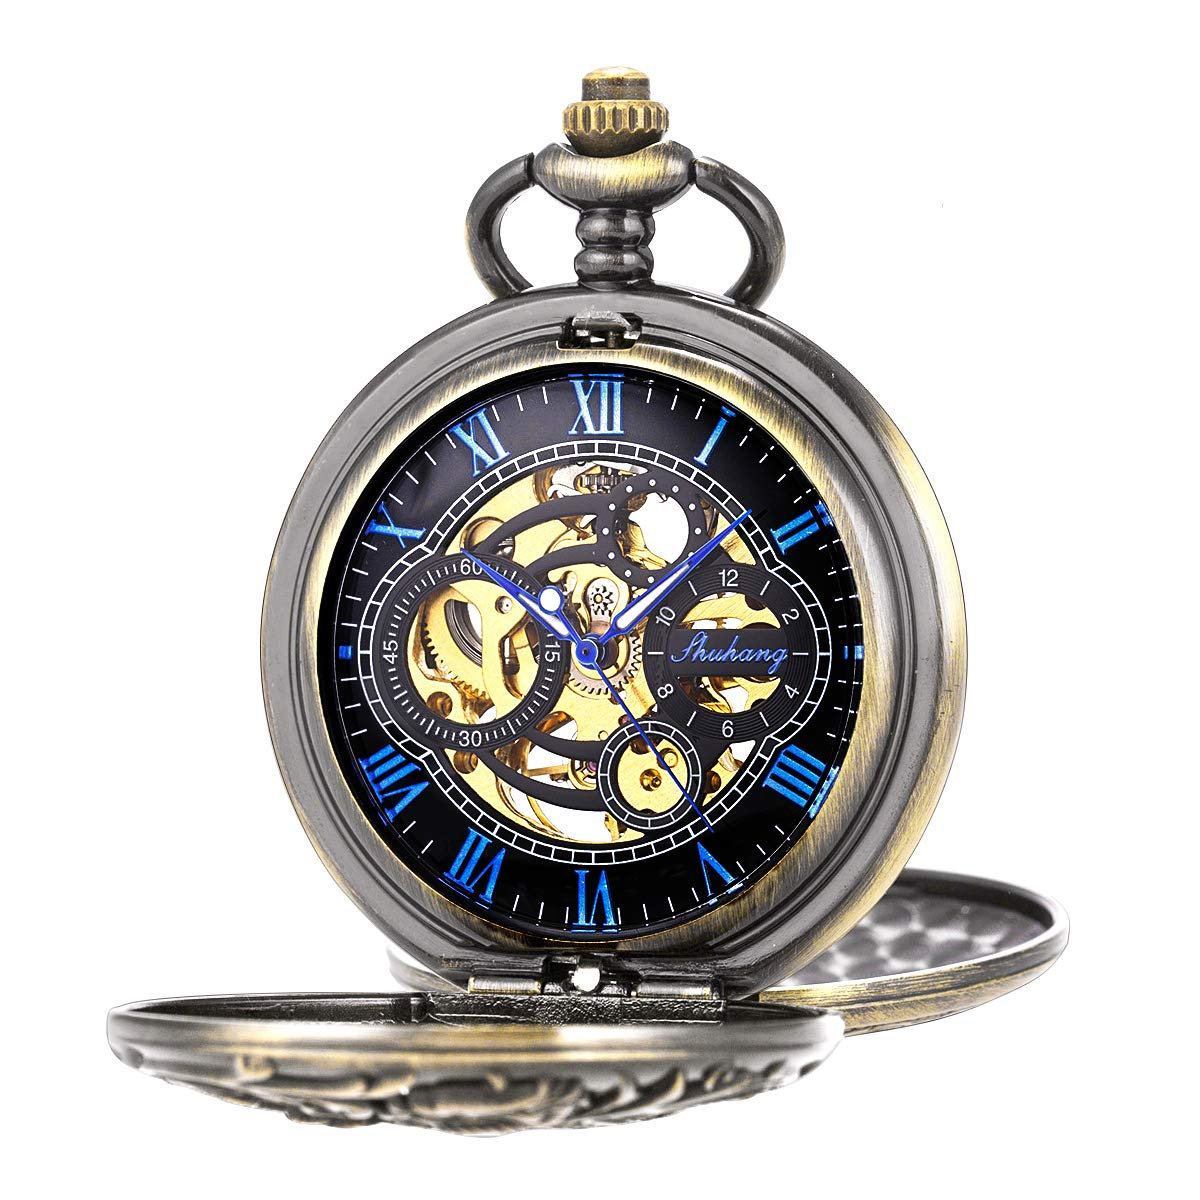 SIBOSUN Pocket Watch Mechanical Skeleton Silver Roman Numerals Steampunk Smooth Double Case Fob Watch for Men Women with Chain